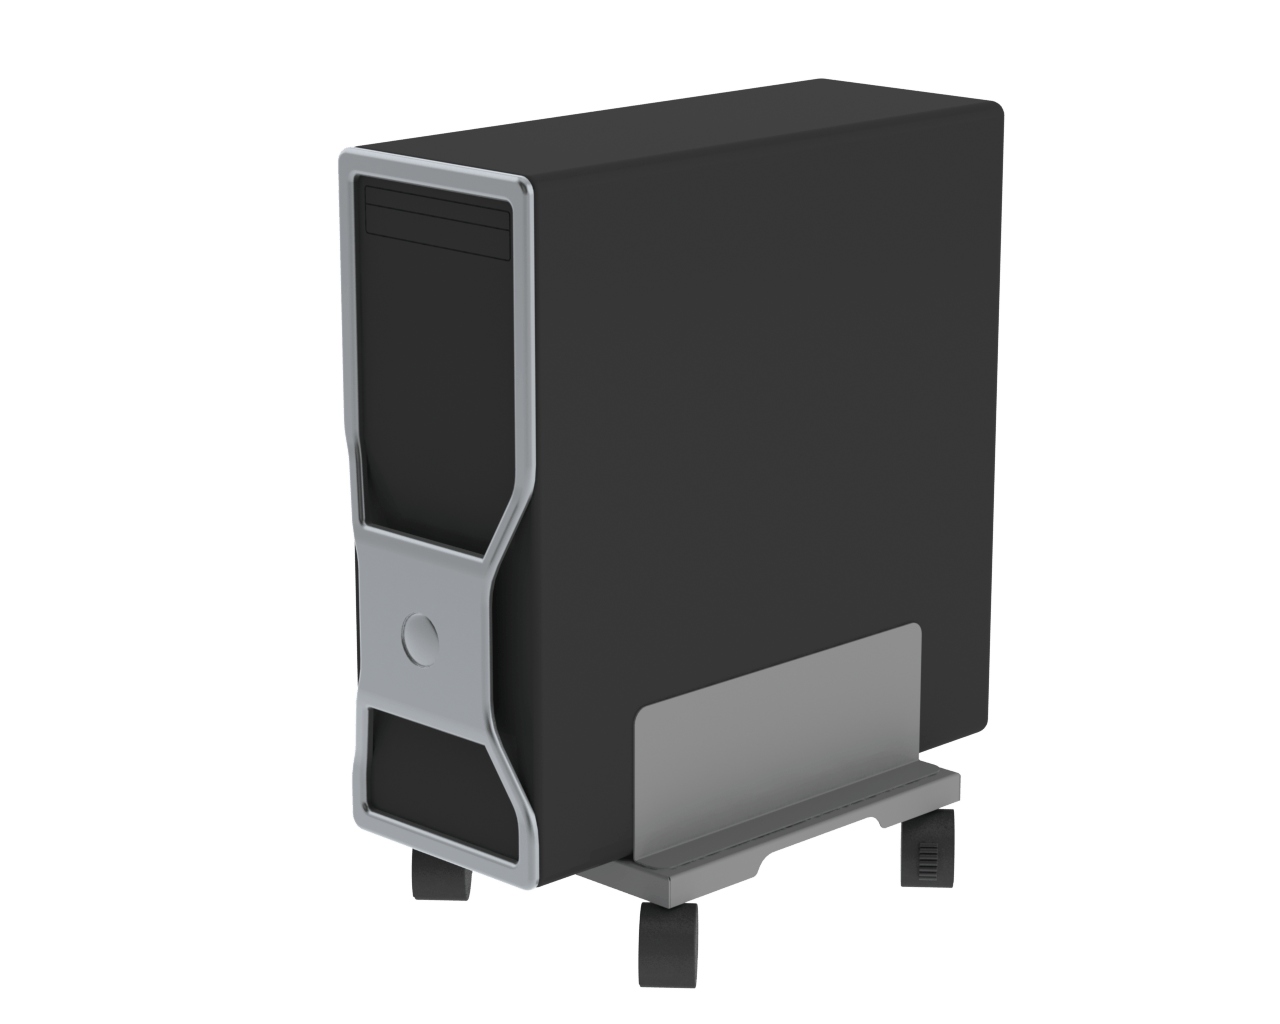 Traveller under desk CPU holder with wheels for movement of PC